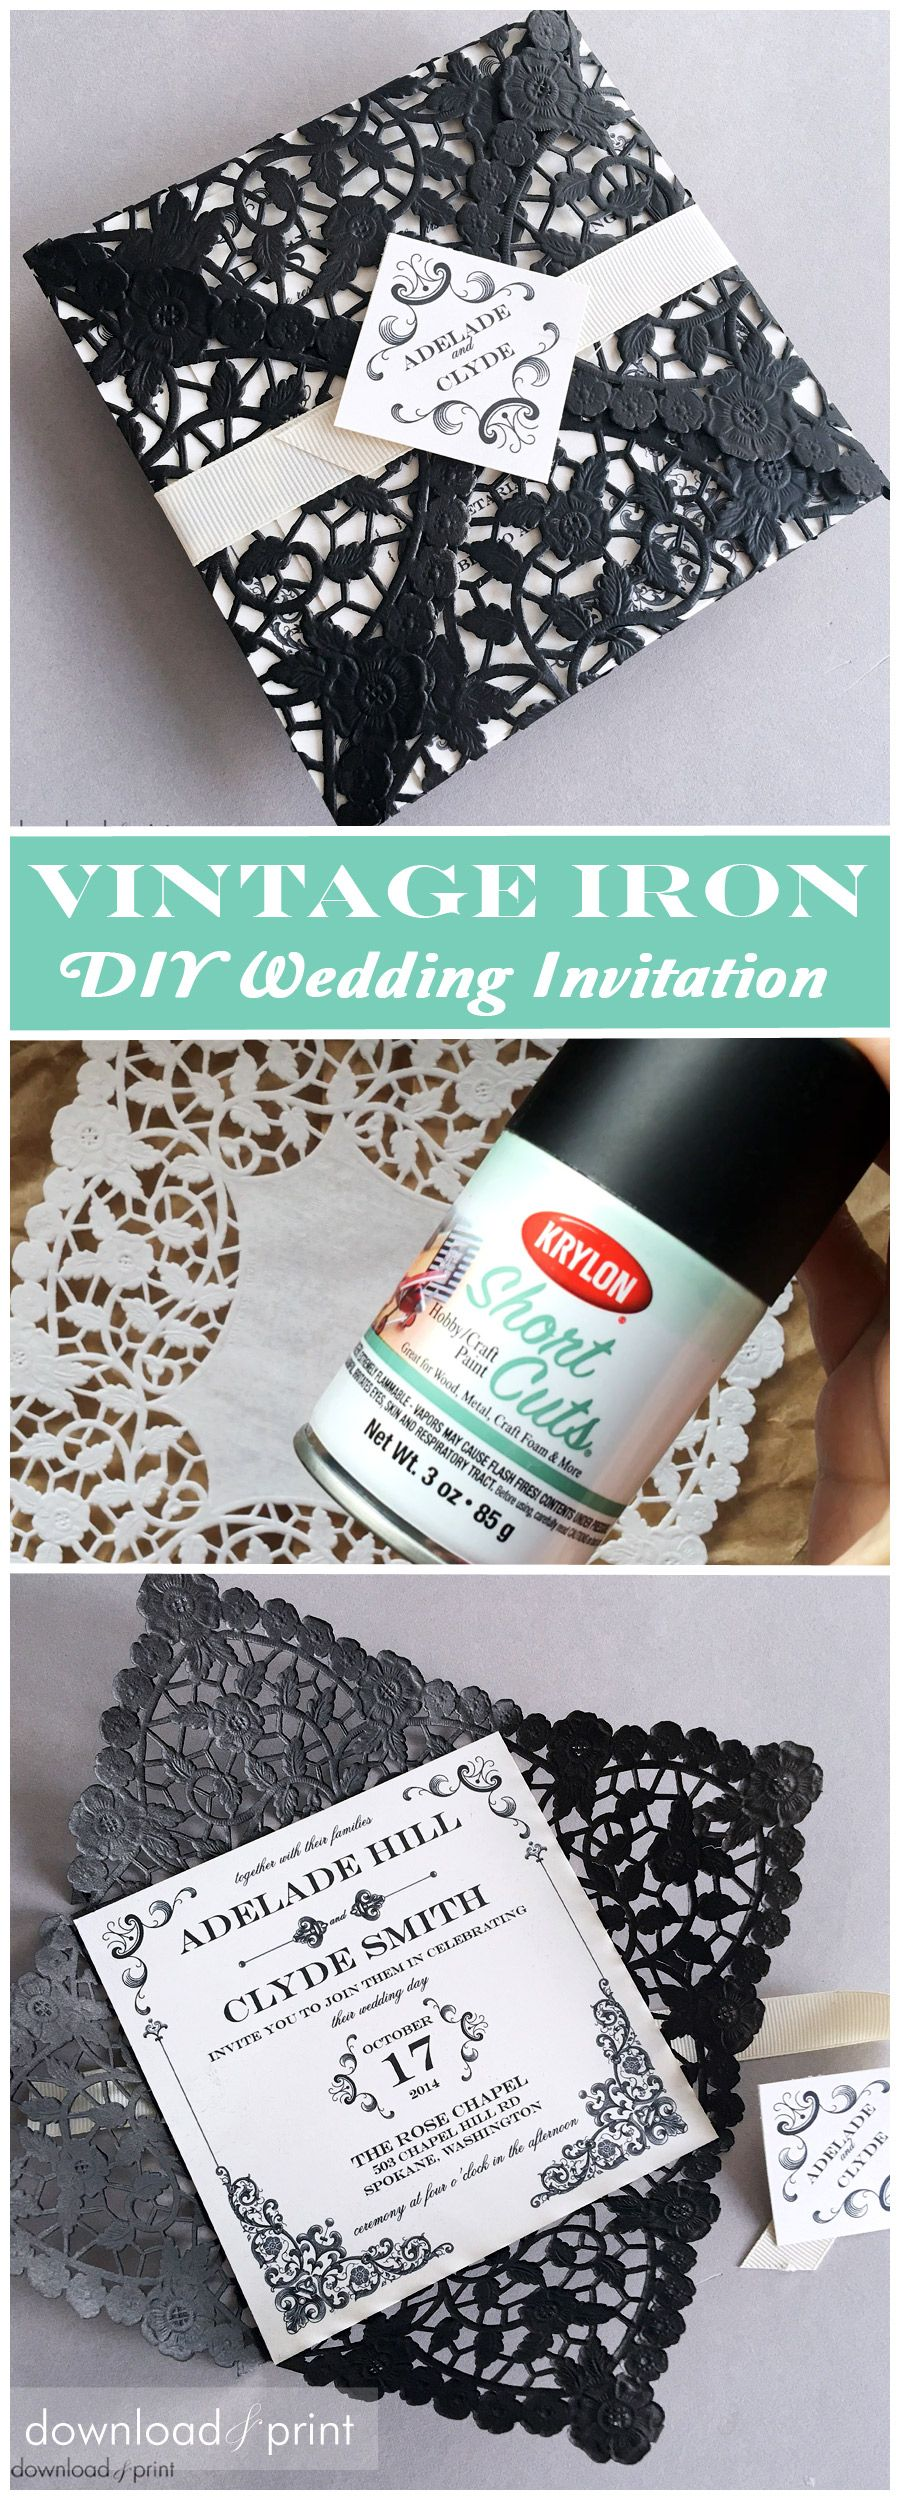 DIY Vintage Iron Wedding Invitation is part of Wedding invitations - Get the laser cut look without the laser cut price tag as I show you how to create stunning wedding invitations that mimic vintage wrought iron